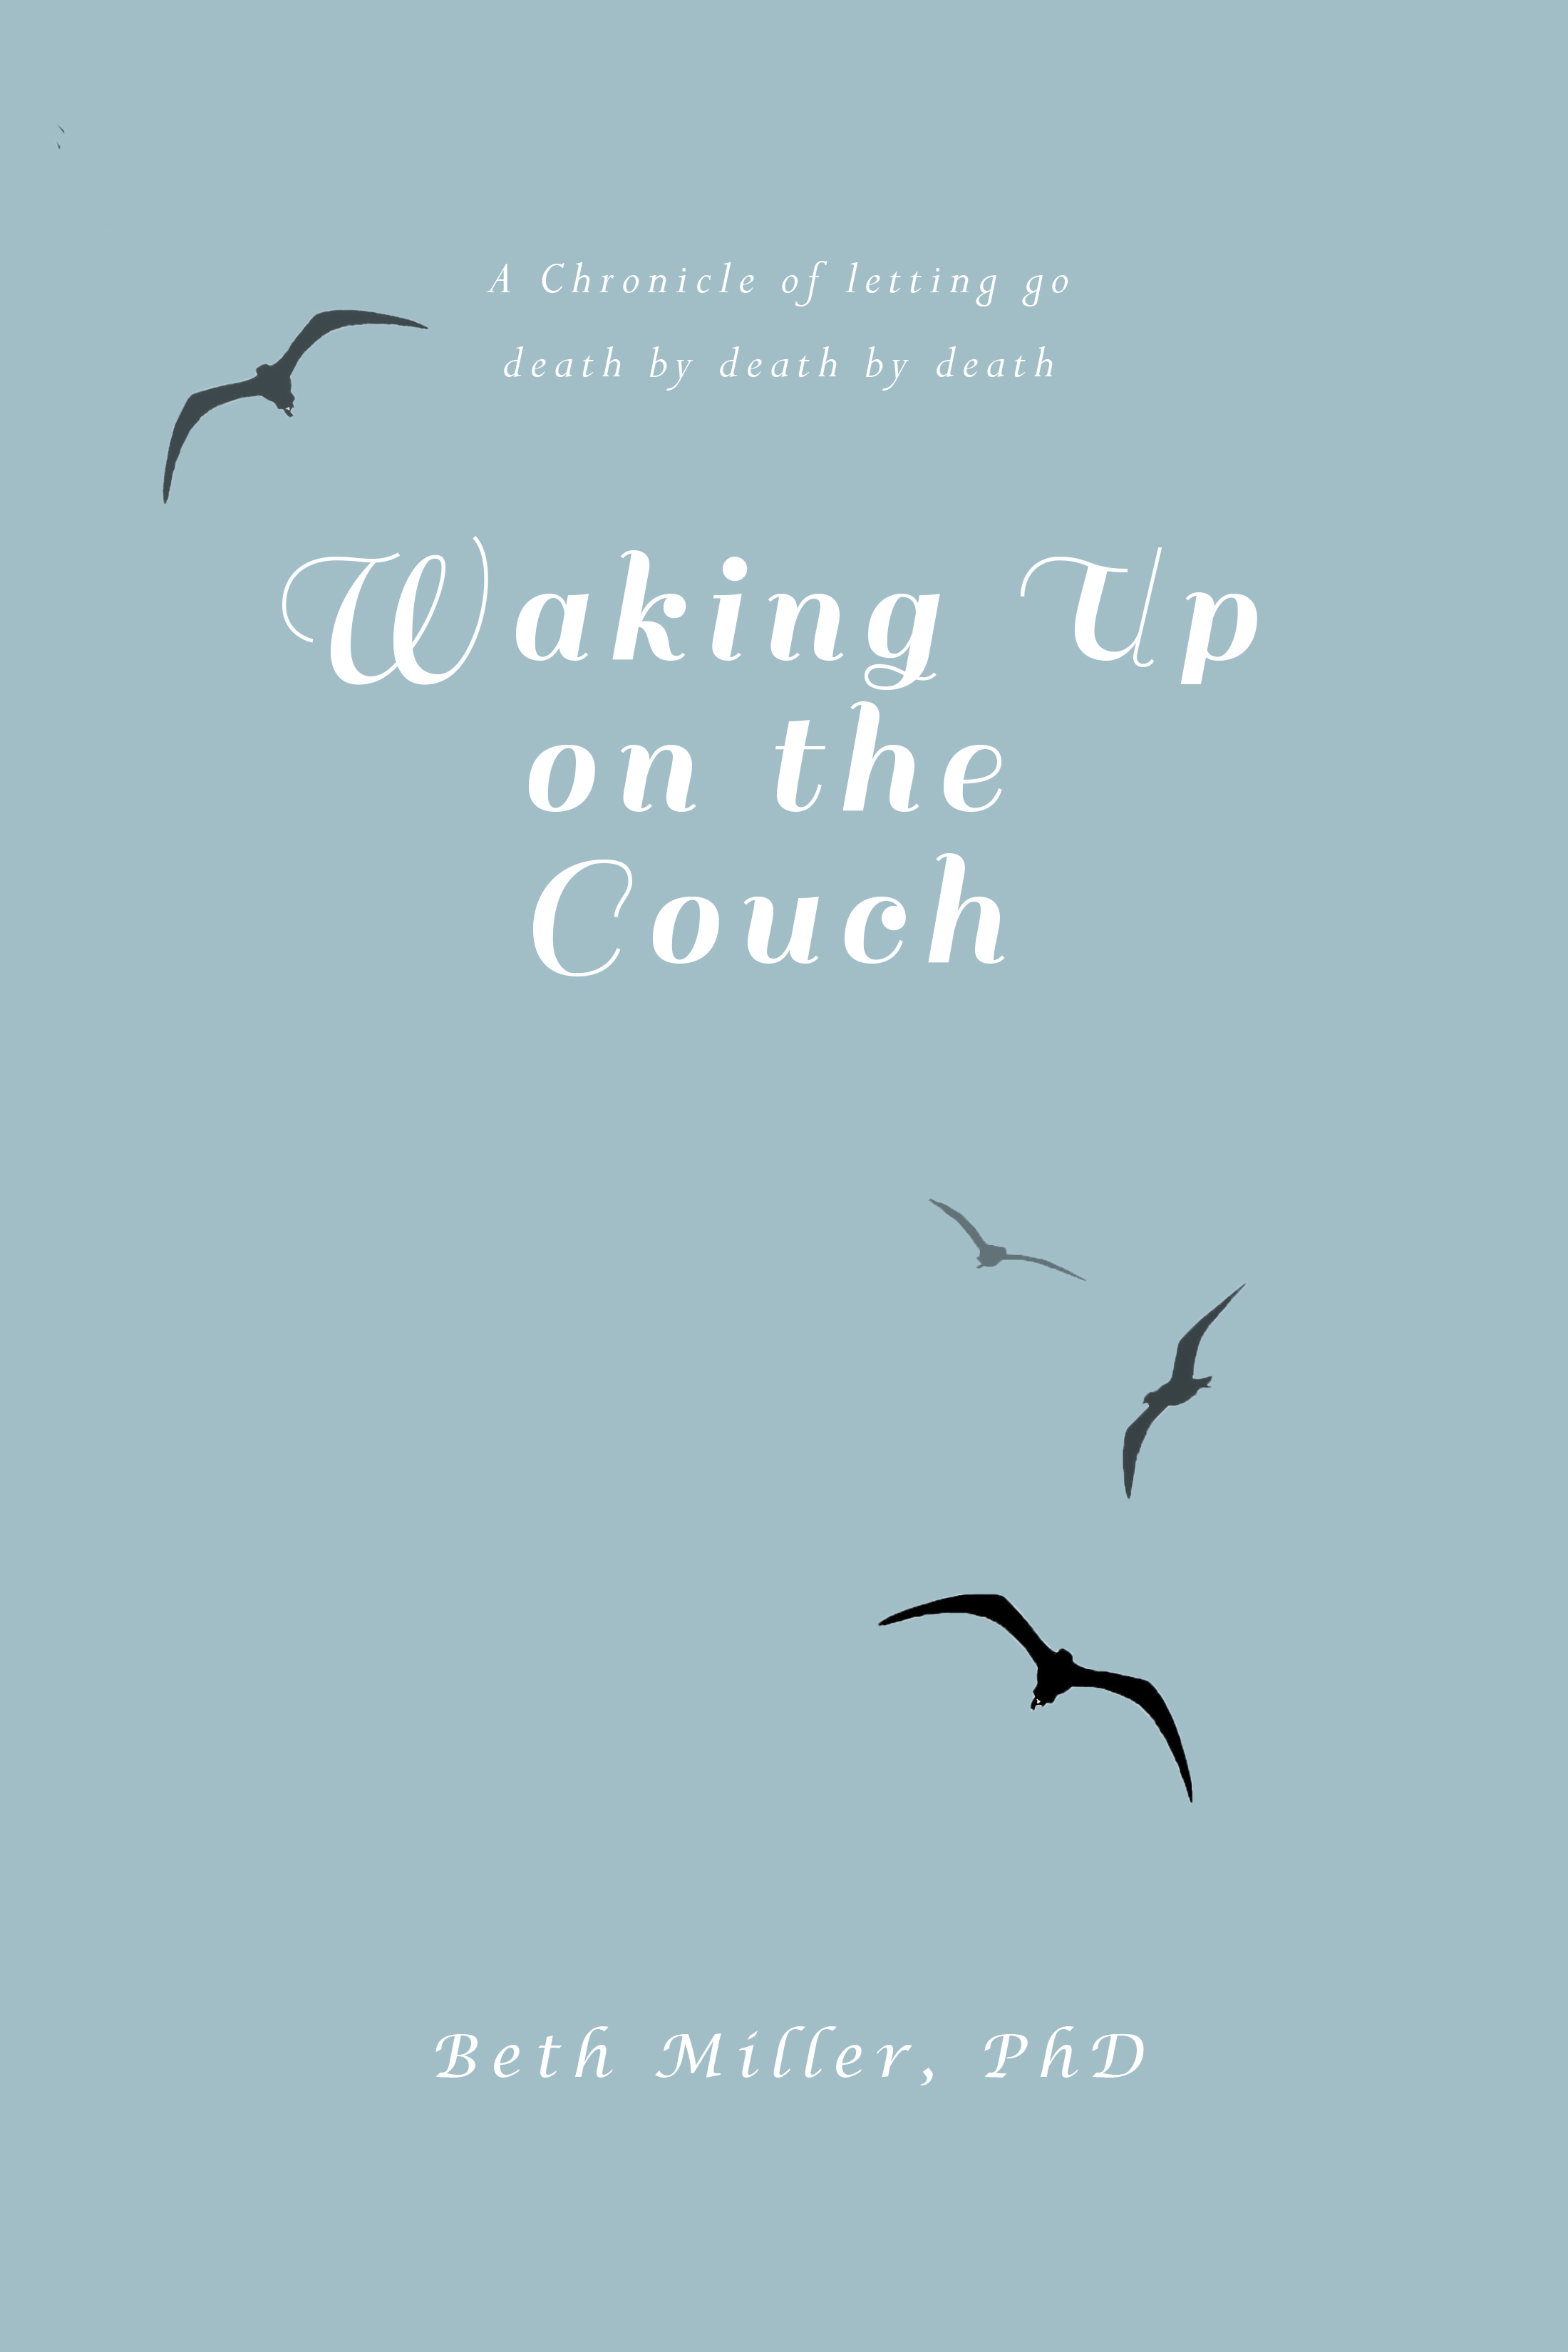 waking up on the couch